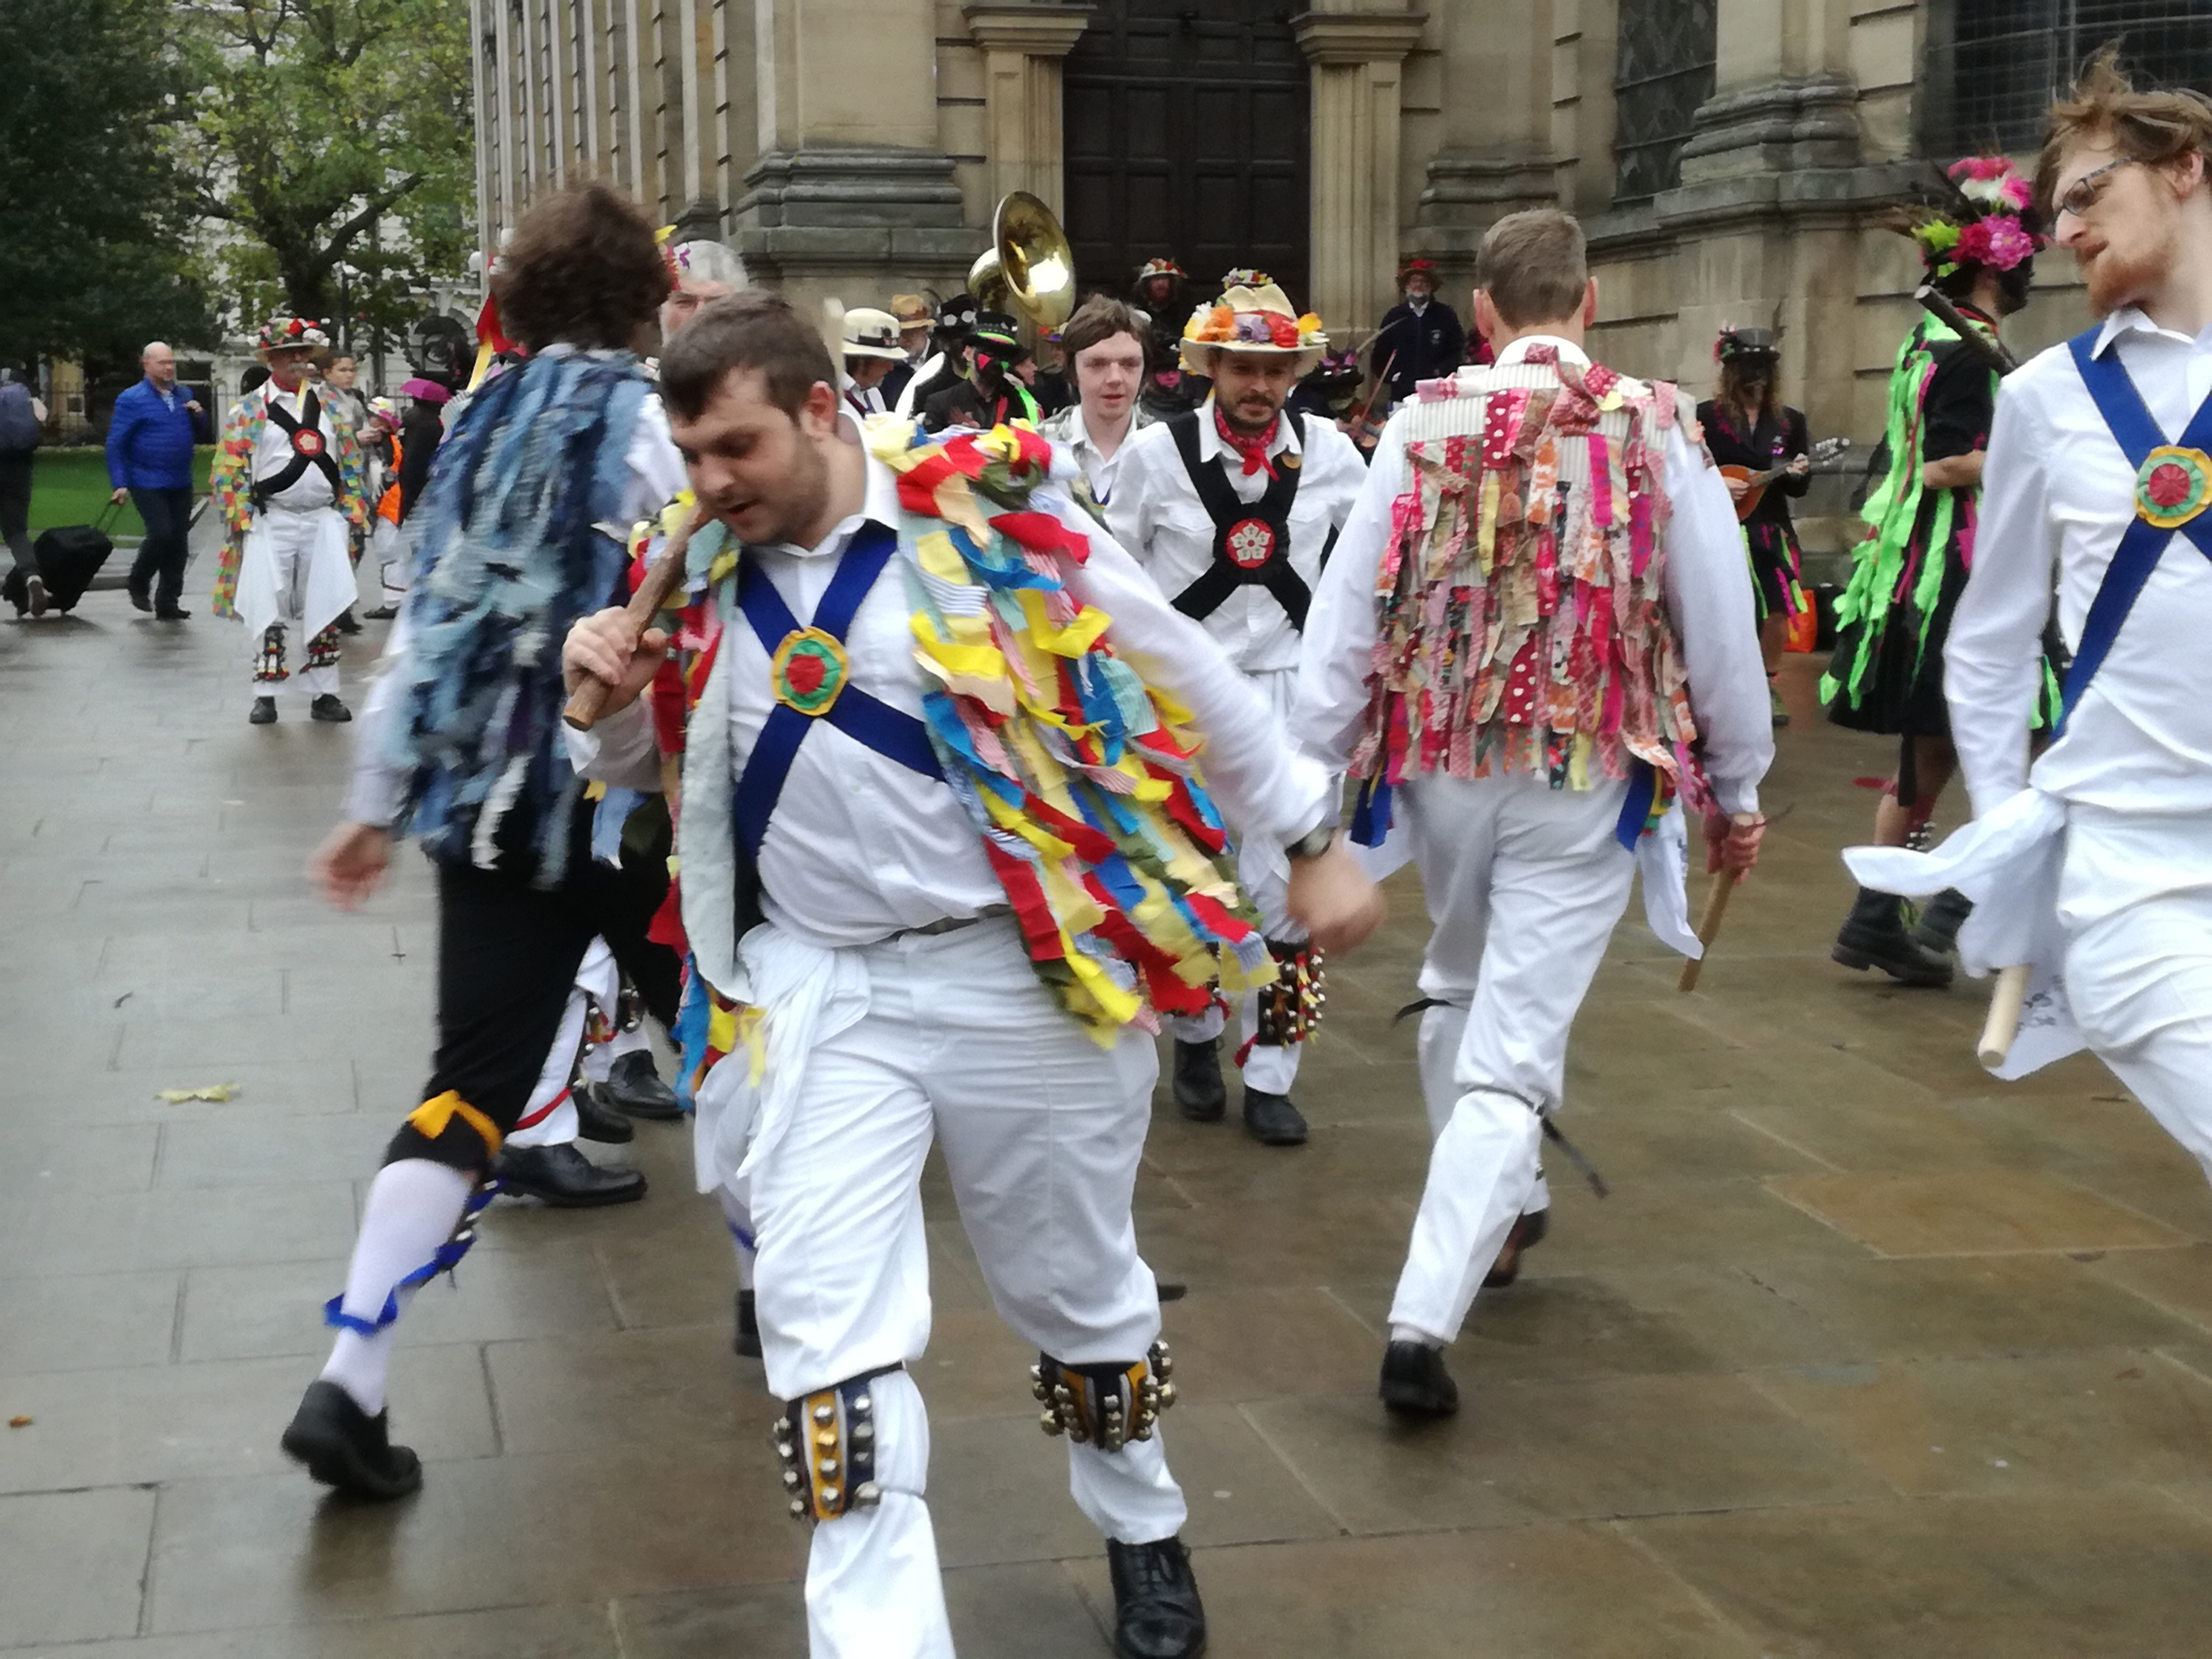 Annual Day of Dance - Border Dancing in The Cathedral Grounds